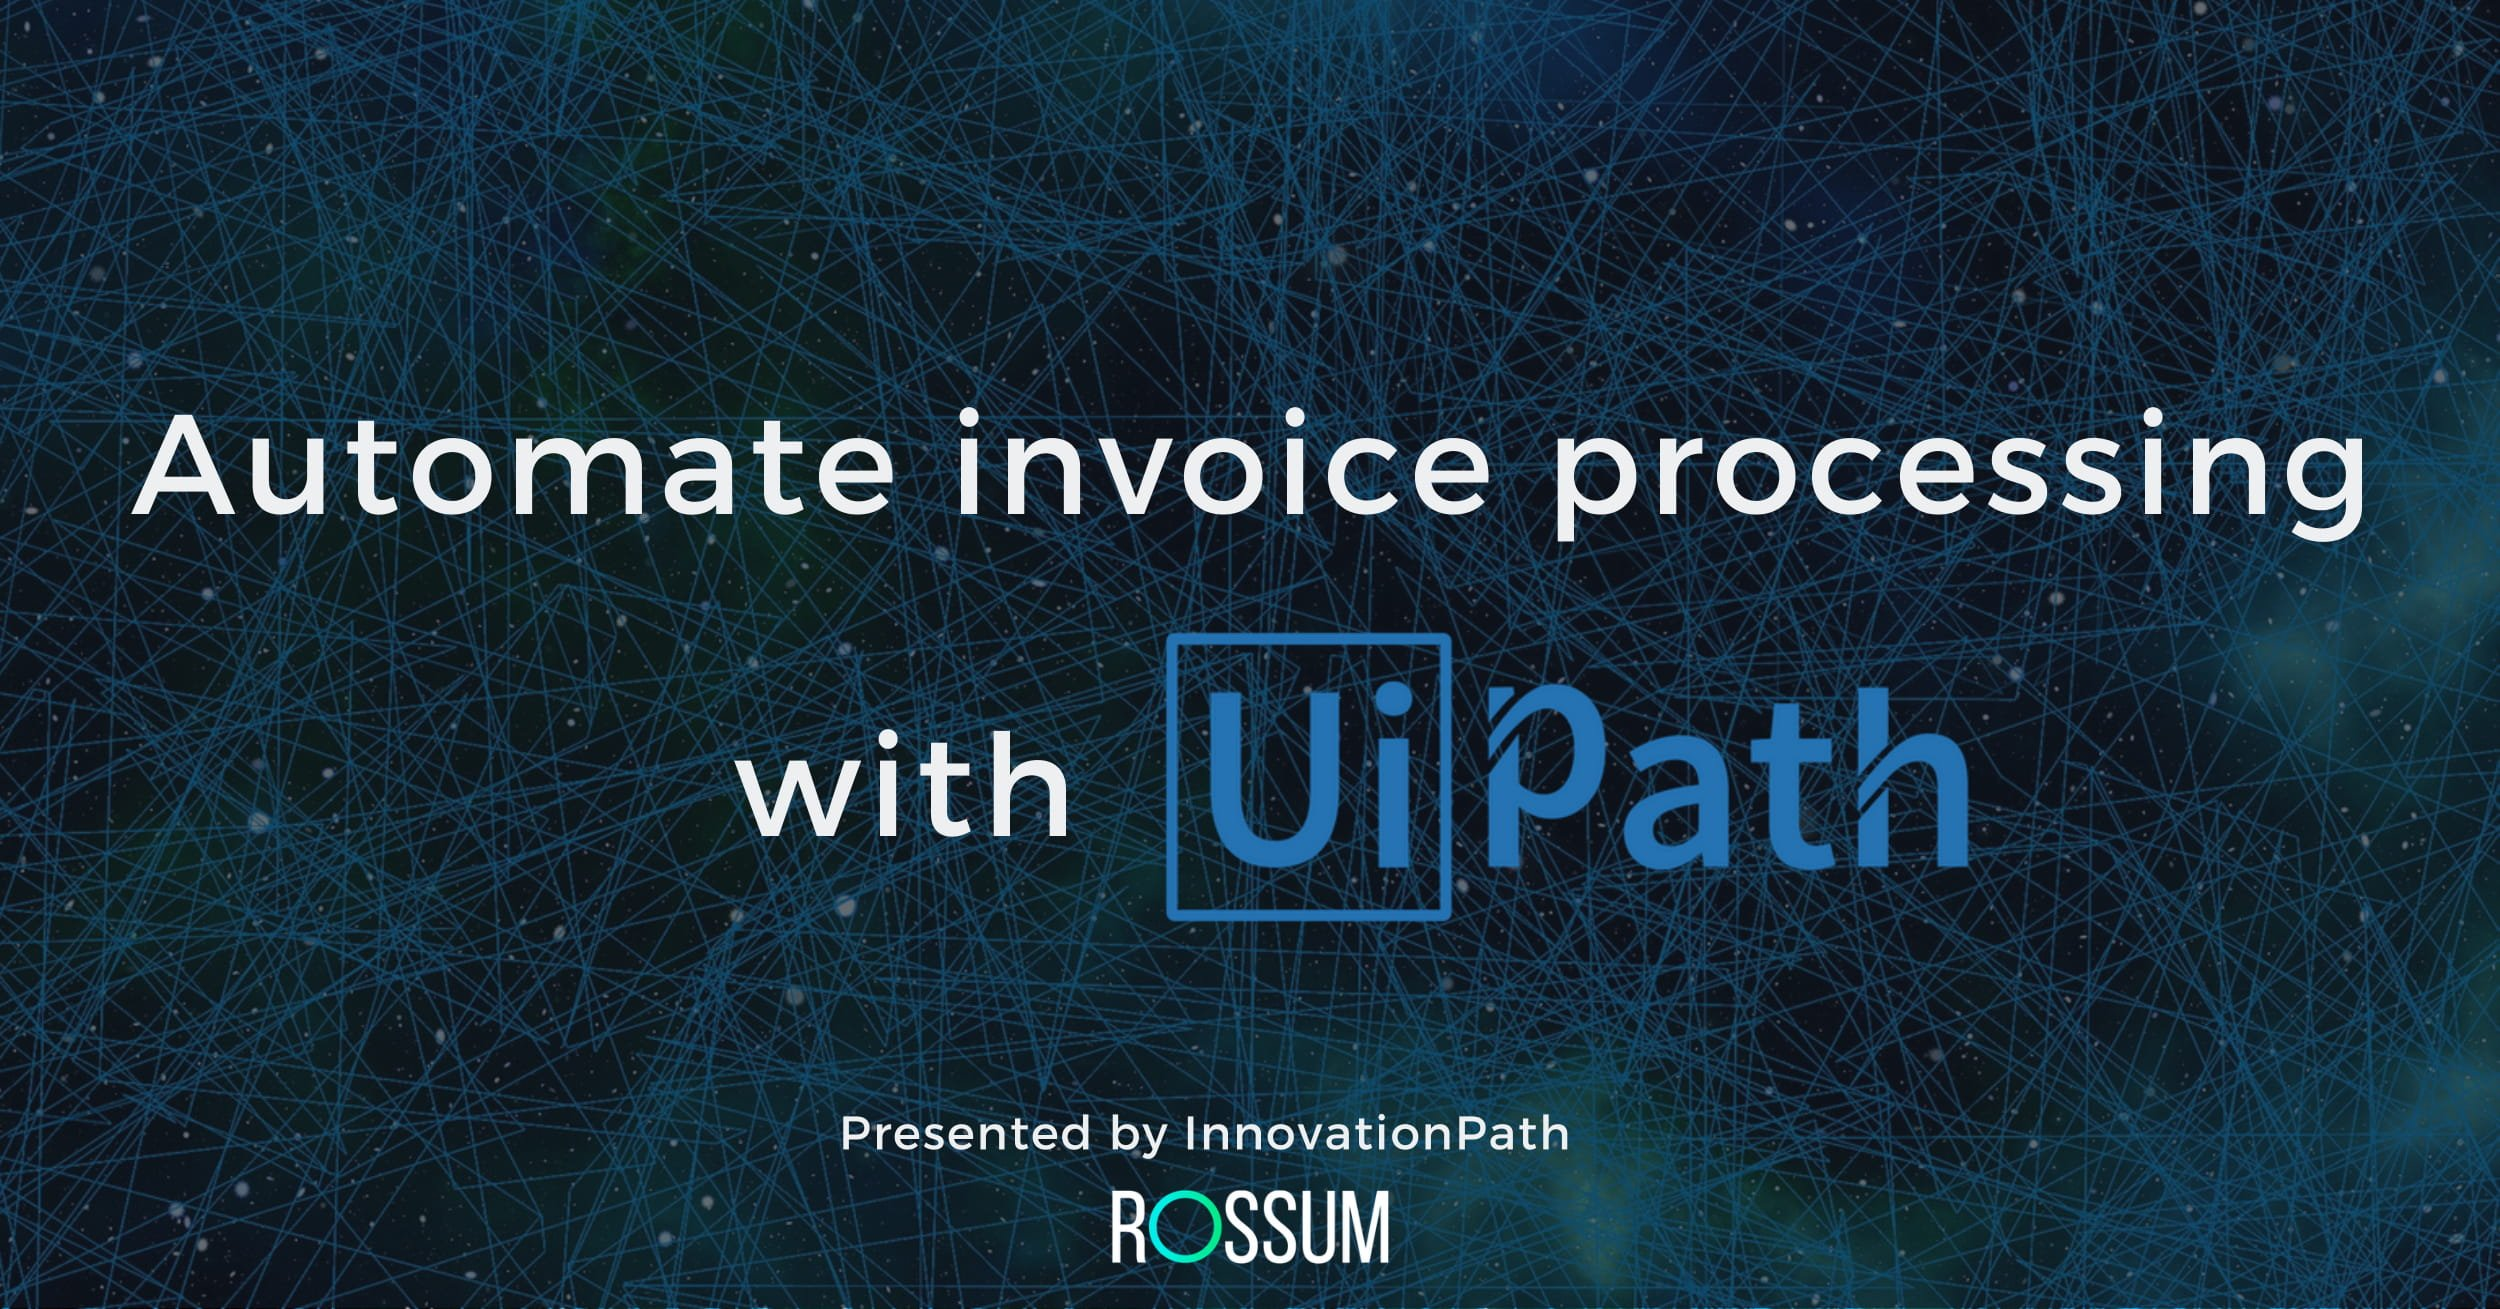 Webinar - Automating Invoice Processing with UiPath